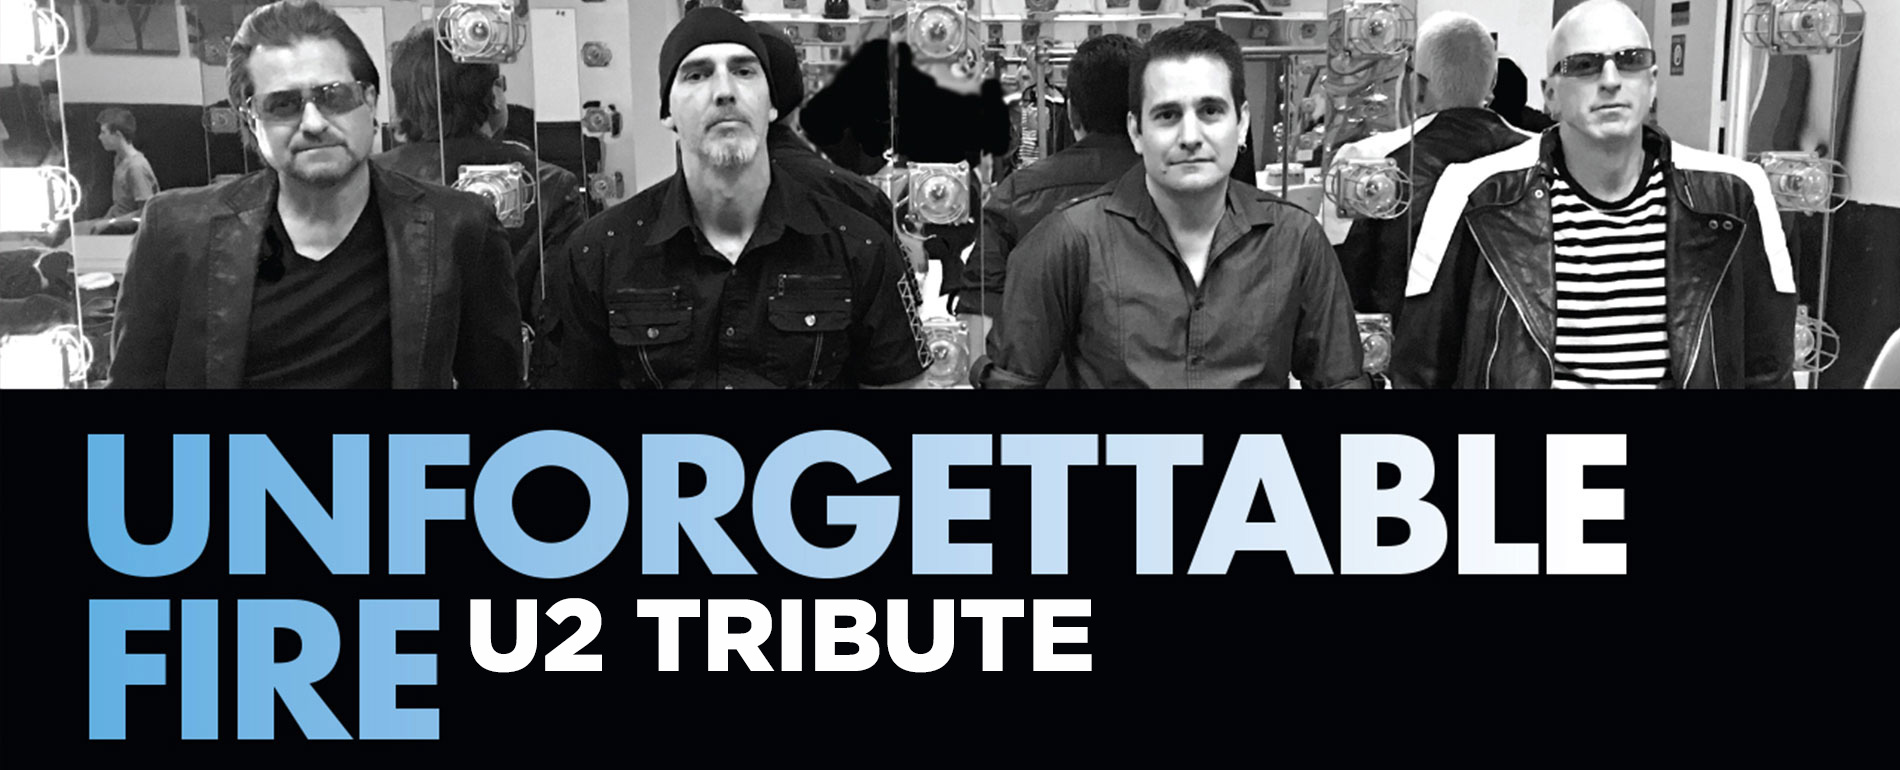 poconos live concert - unforgettable fire - u2 tribute